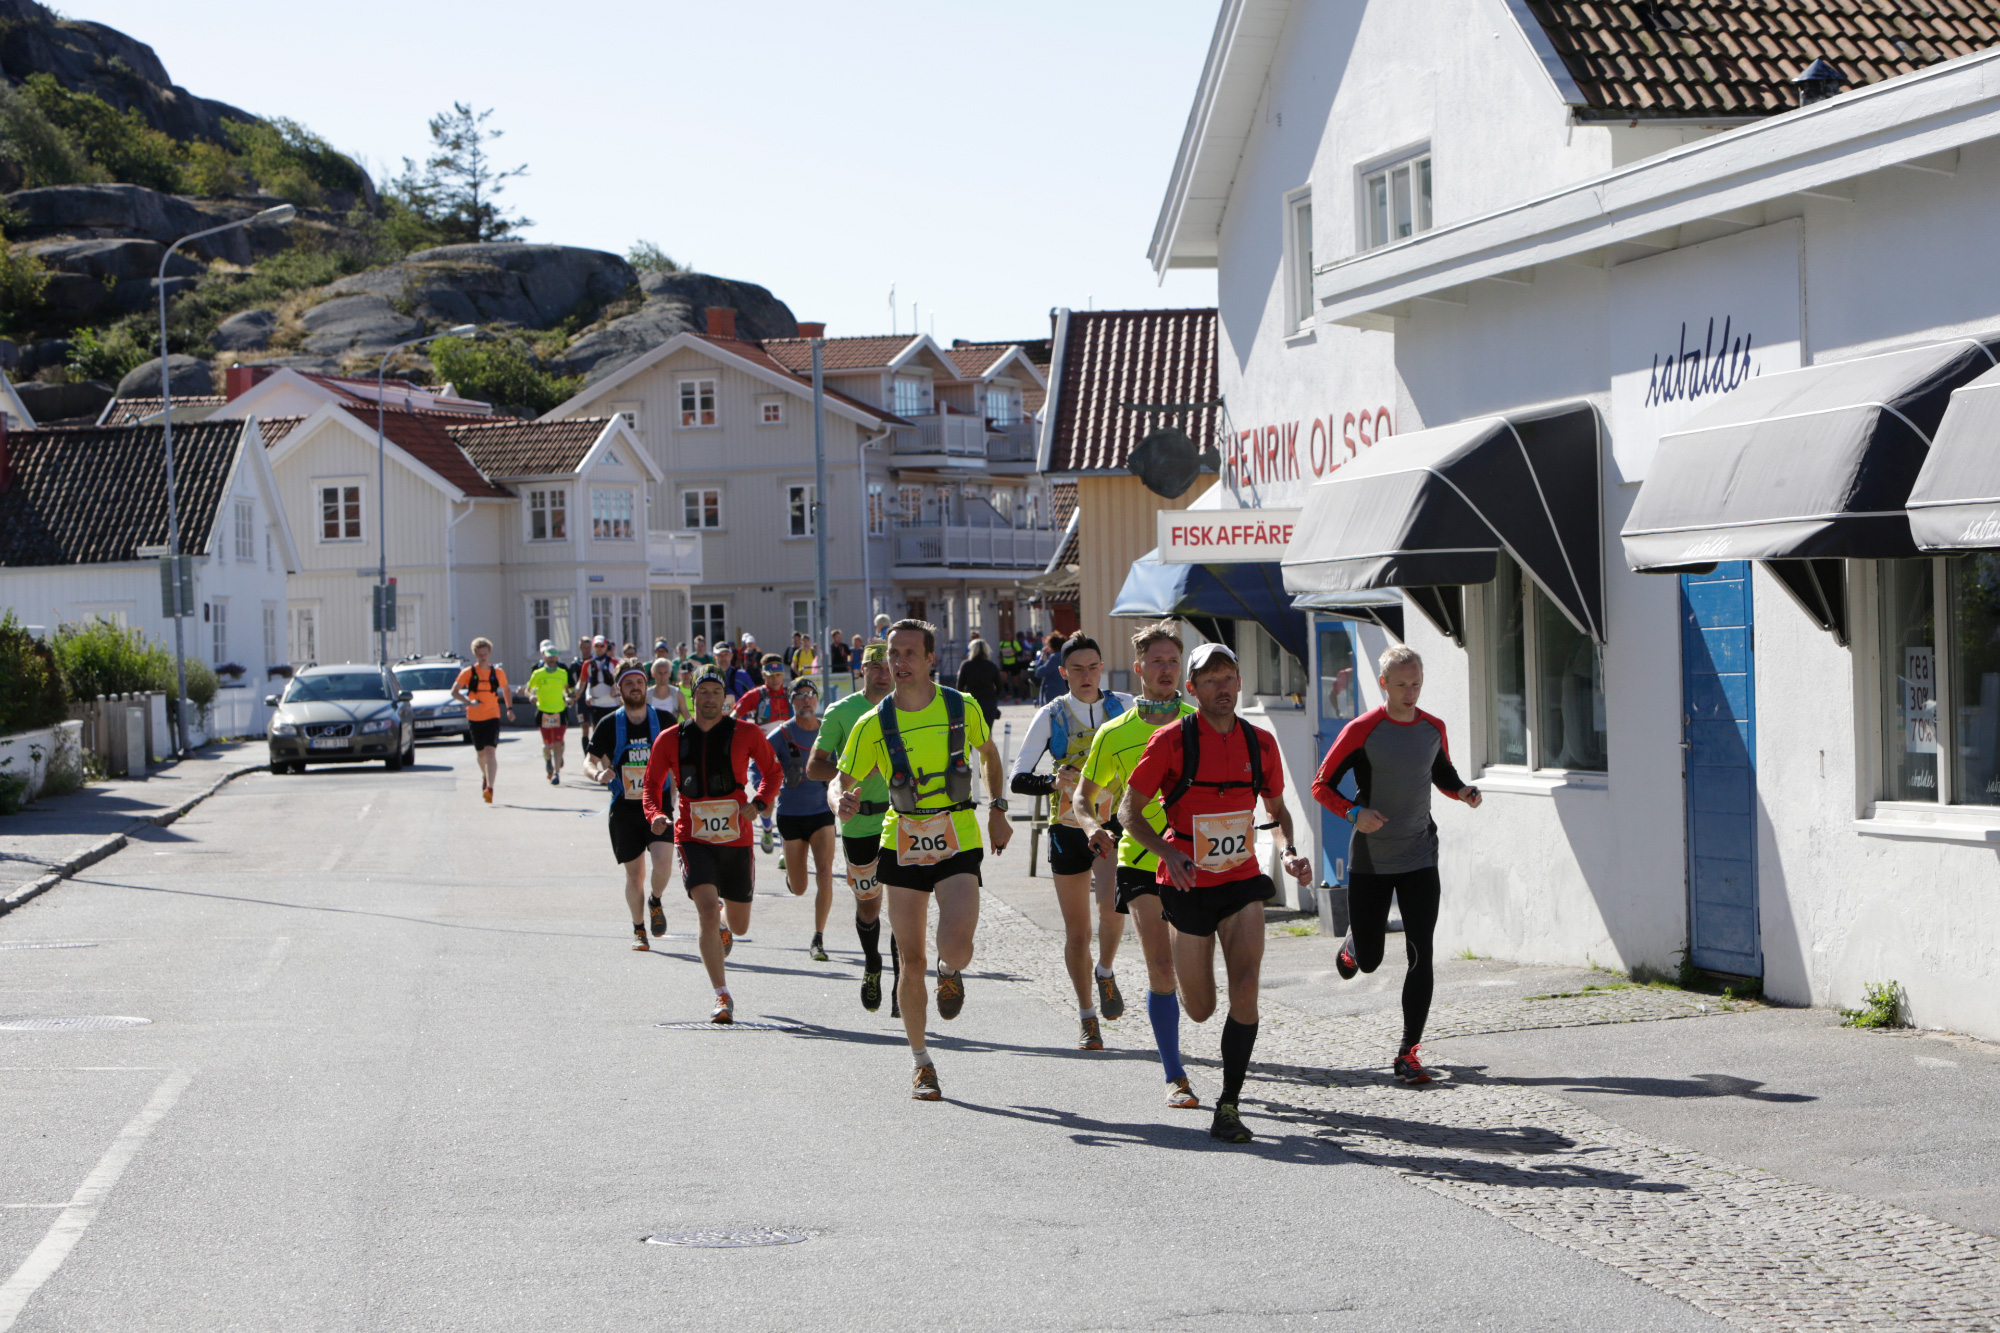 Group of runners going through a town's street on the Icebug Xperience marathon